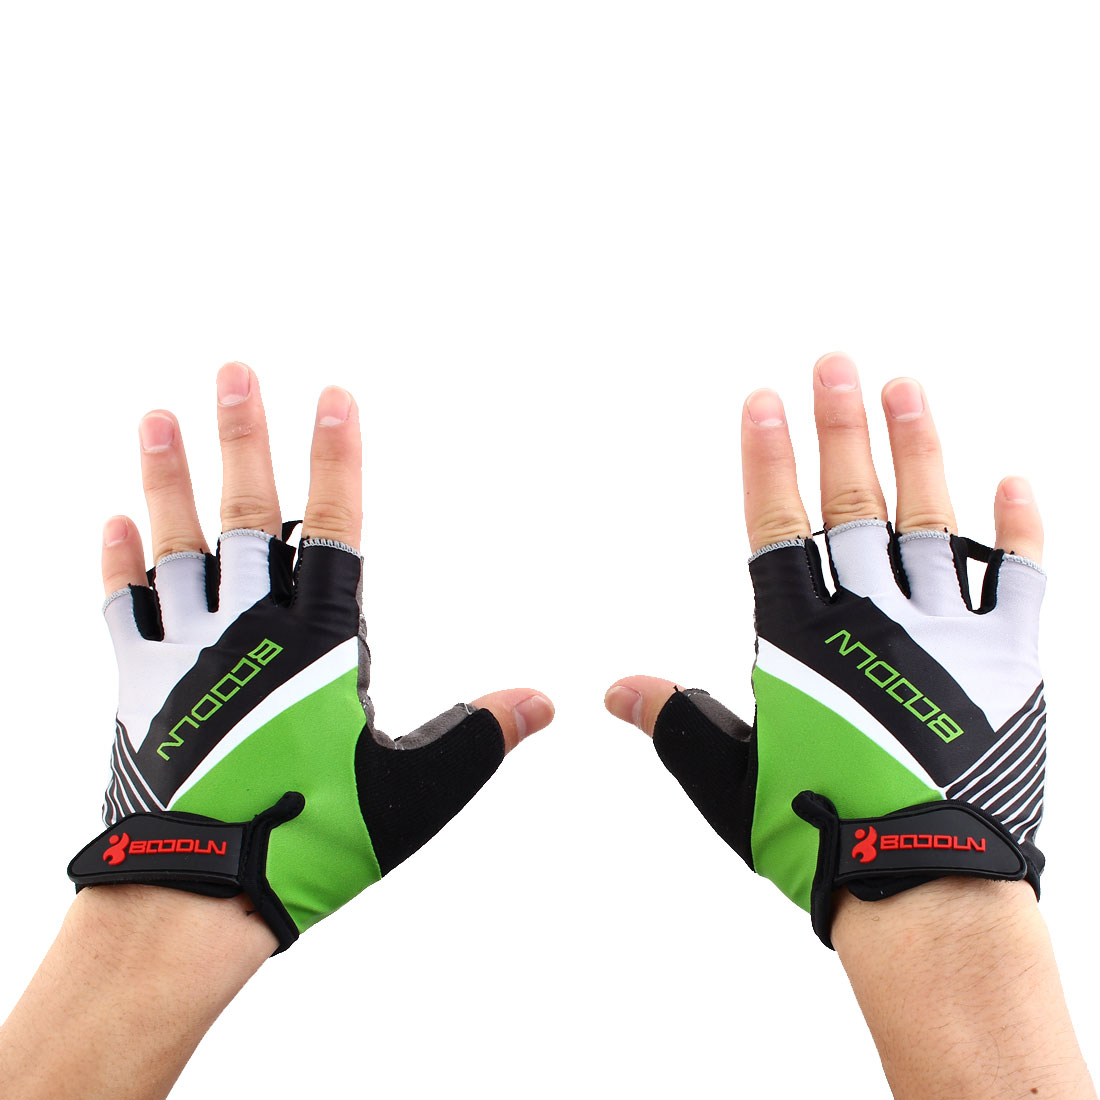 BOODUN Authorized Unisex Exercise Sports Cycling Fitness Half Finger Palm Support Gloves Green Size XXL Pair